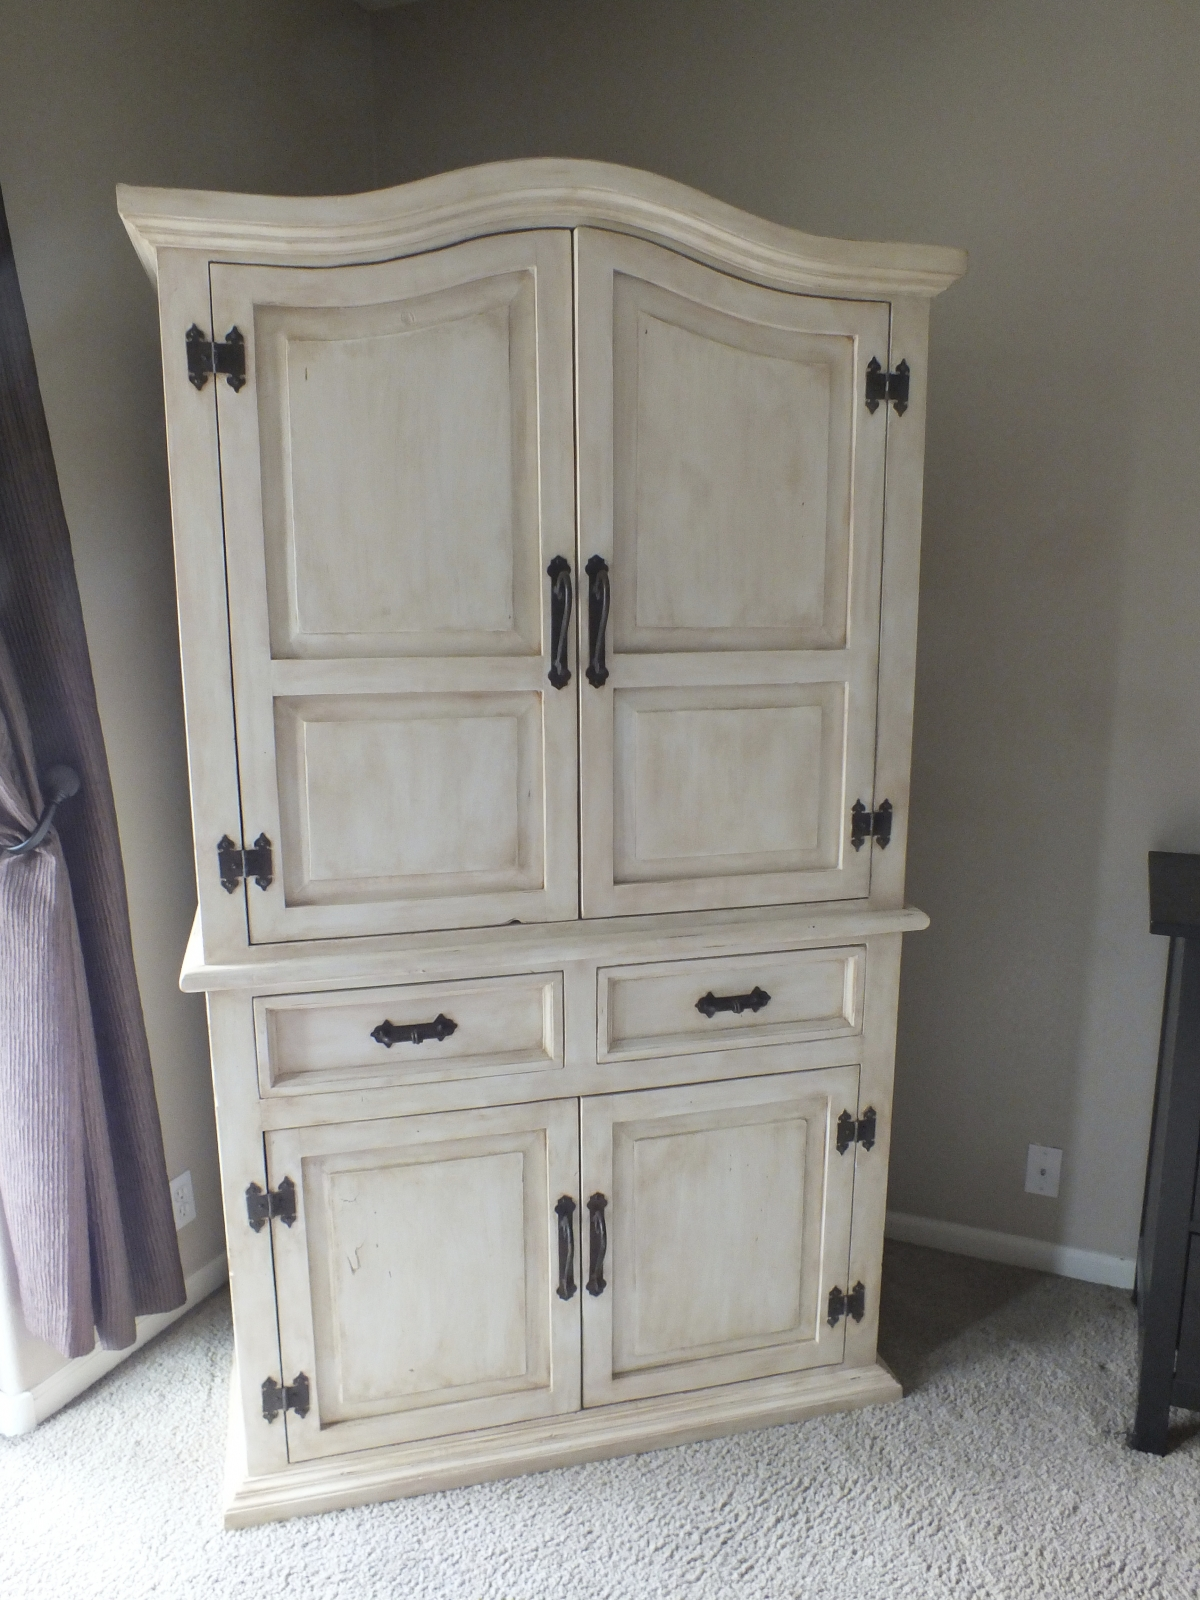 Tired of the Rustic Pine Look Armoire Facelift  House of Rumours